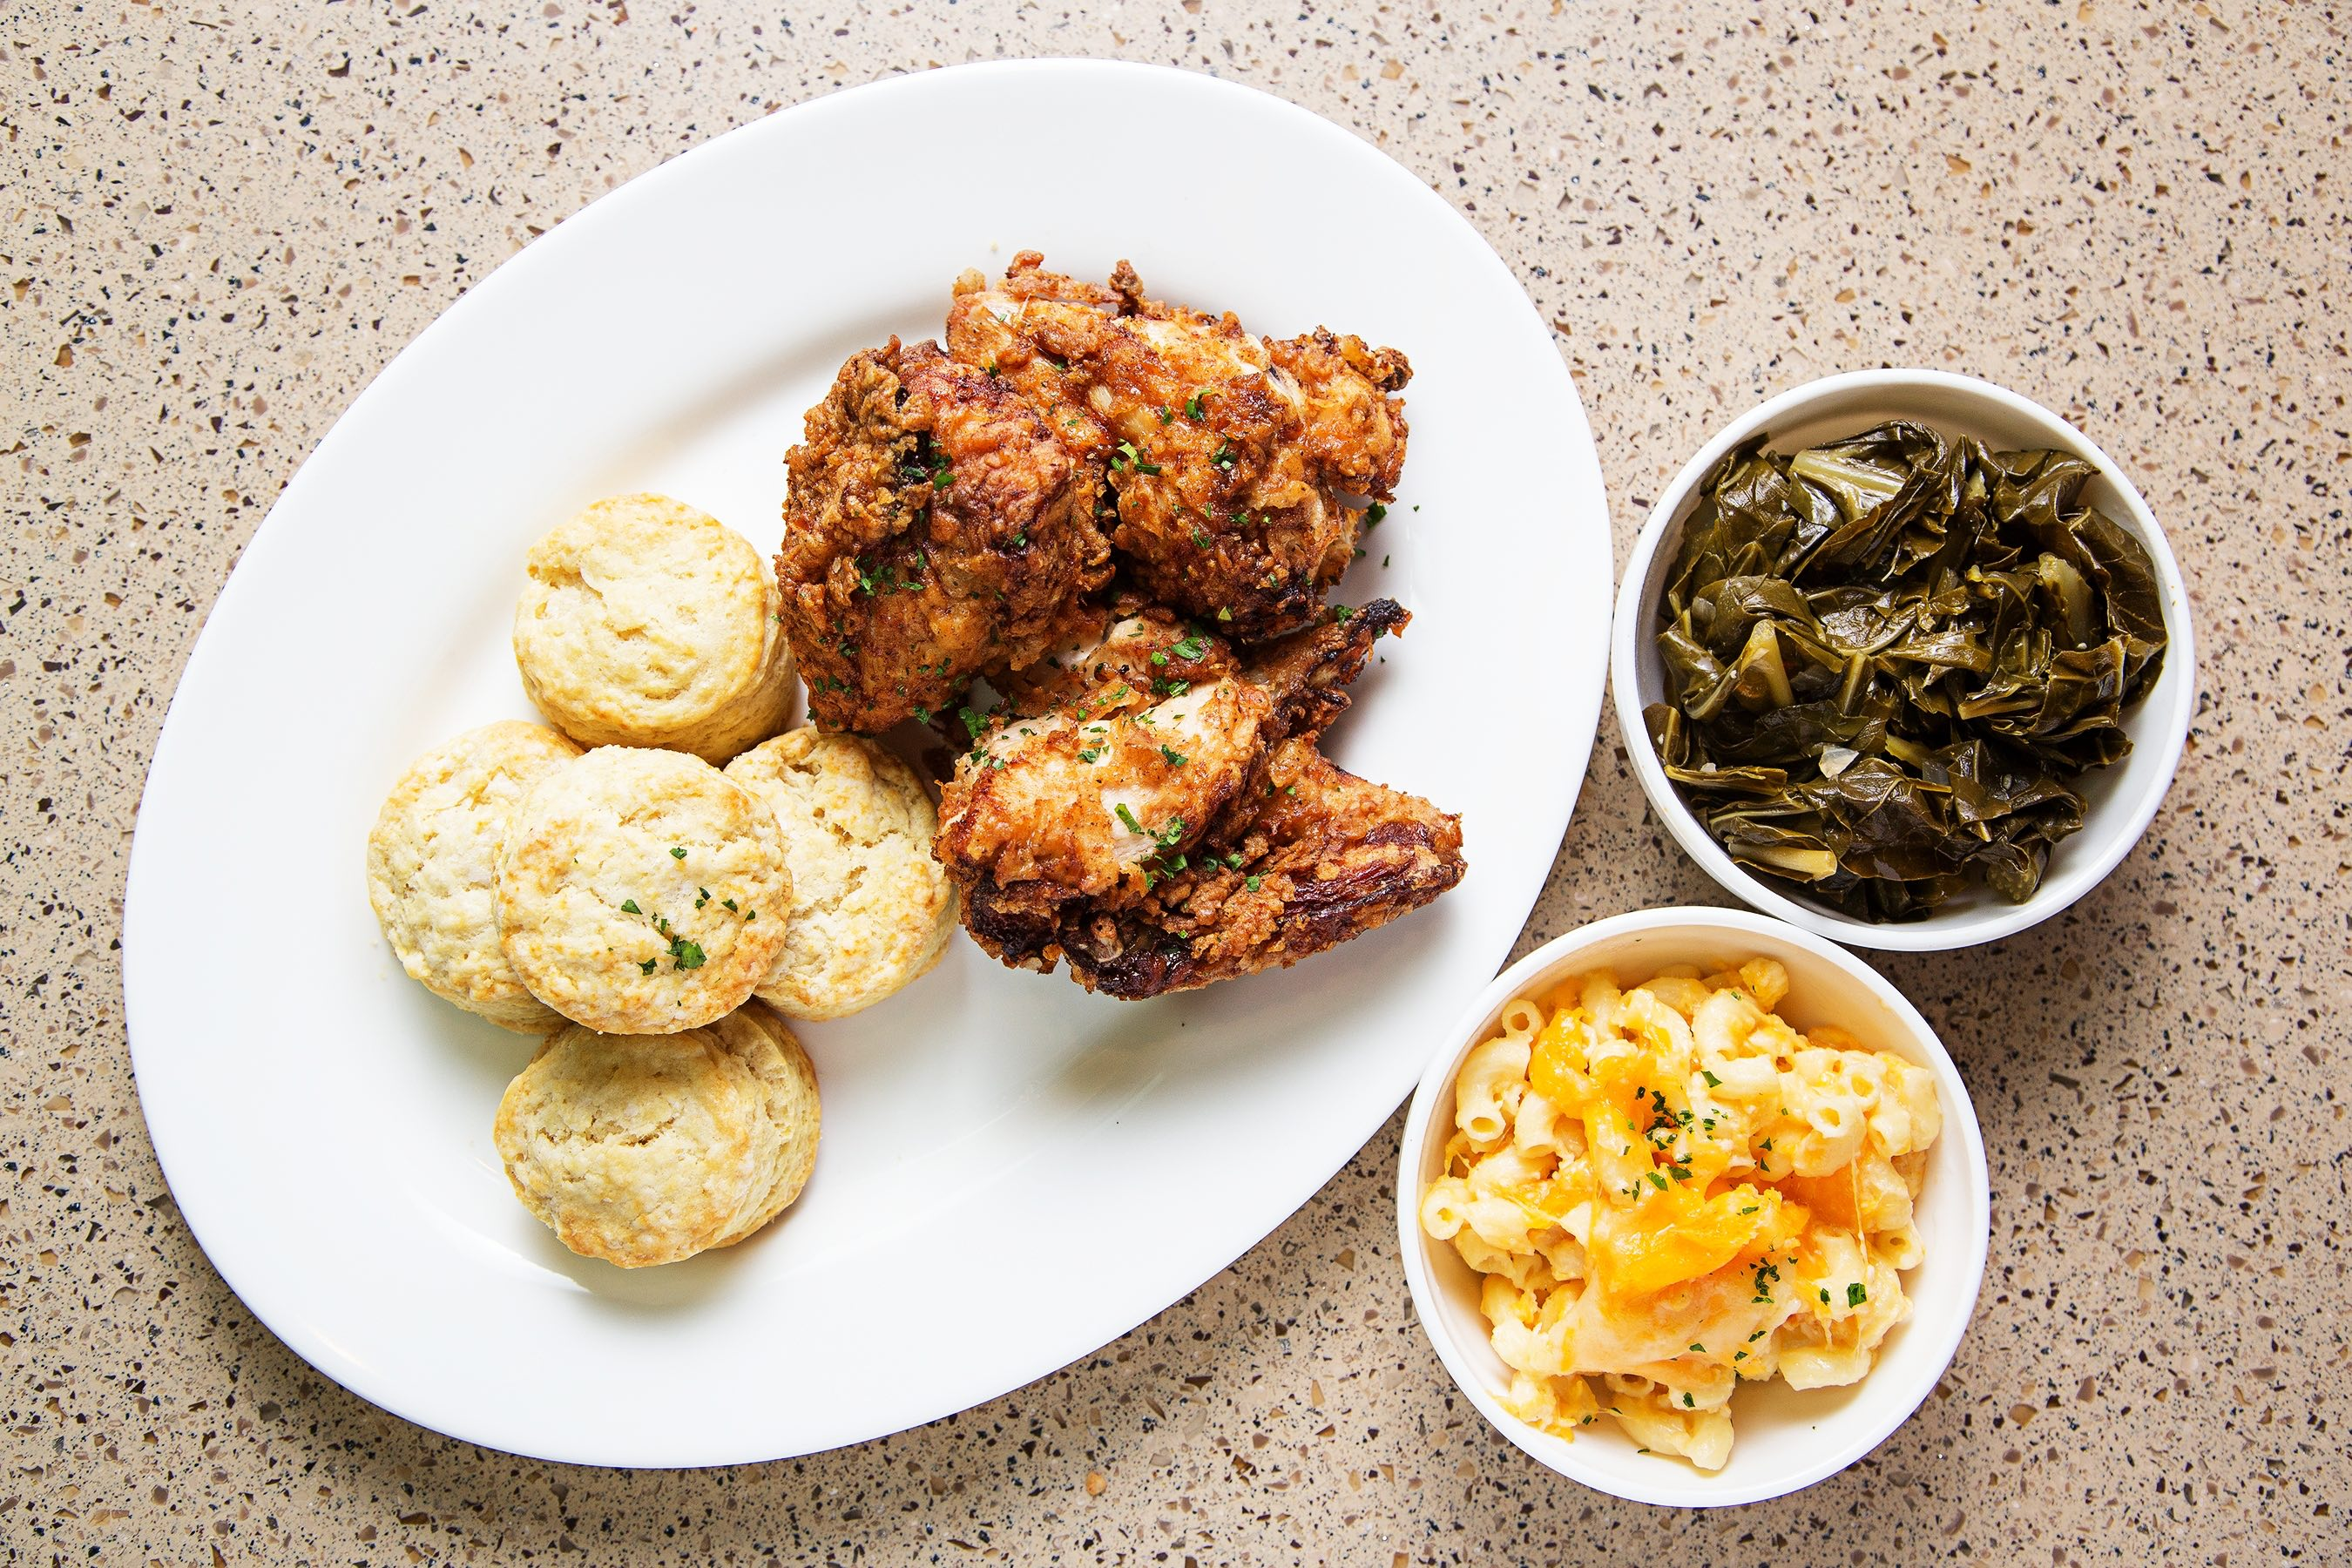 Gospel Bird Platter, Courtesy of the National Museum of African American History and Culture's Sweet Home Cafe